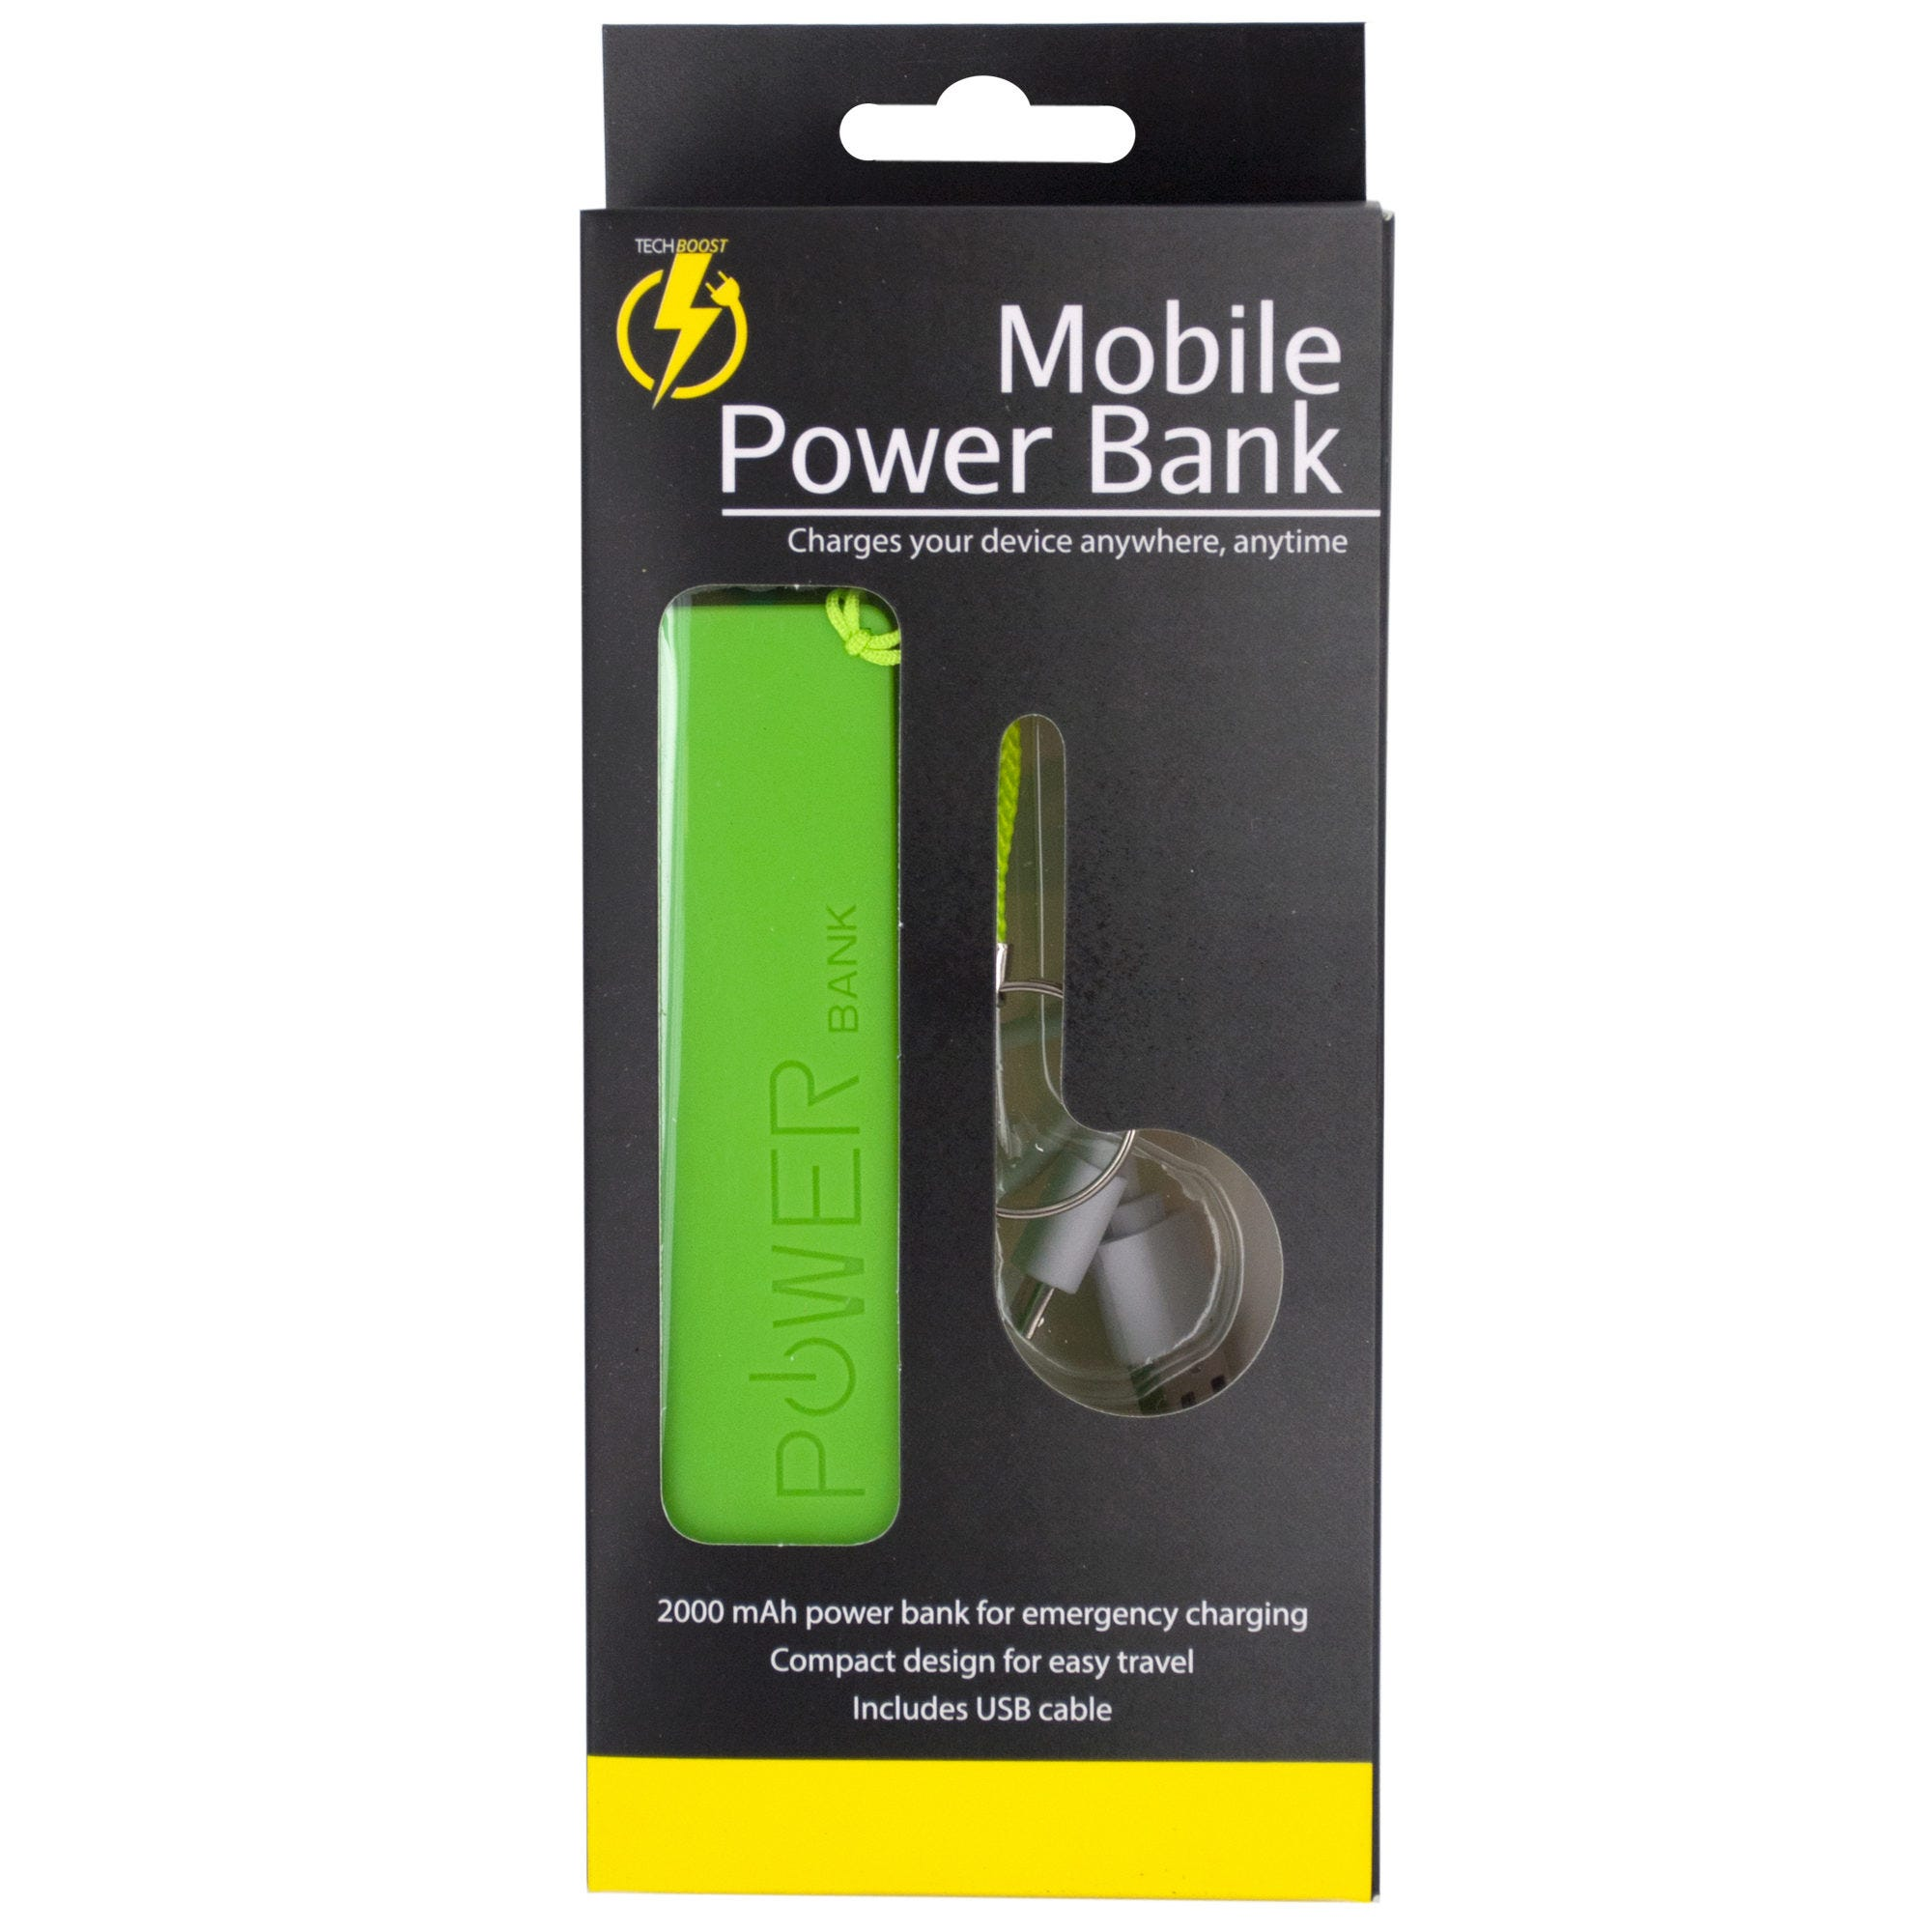 Mobile Power Bank KEYCHAIN- Qty 8